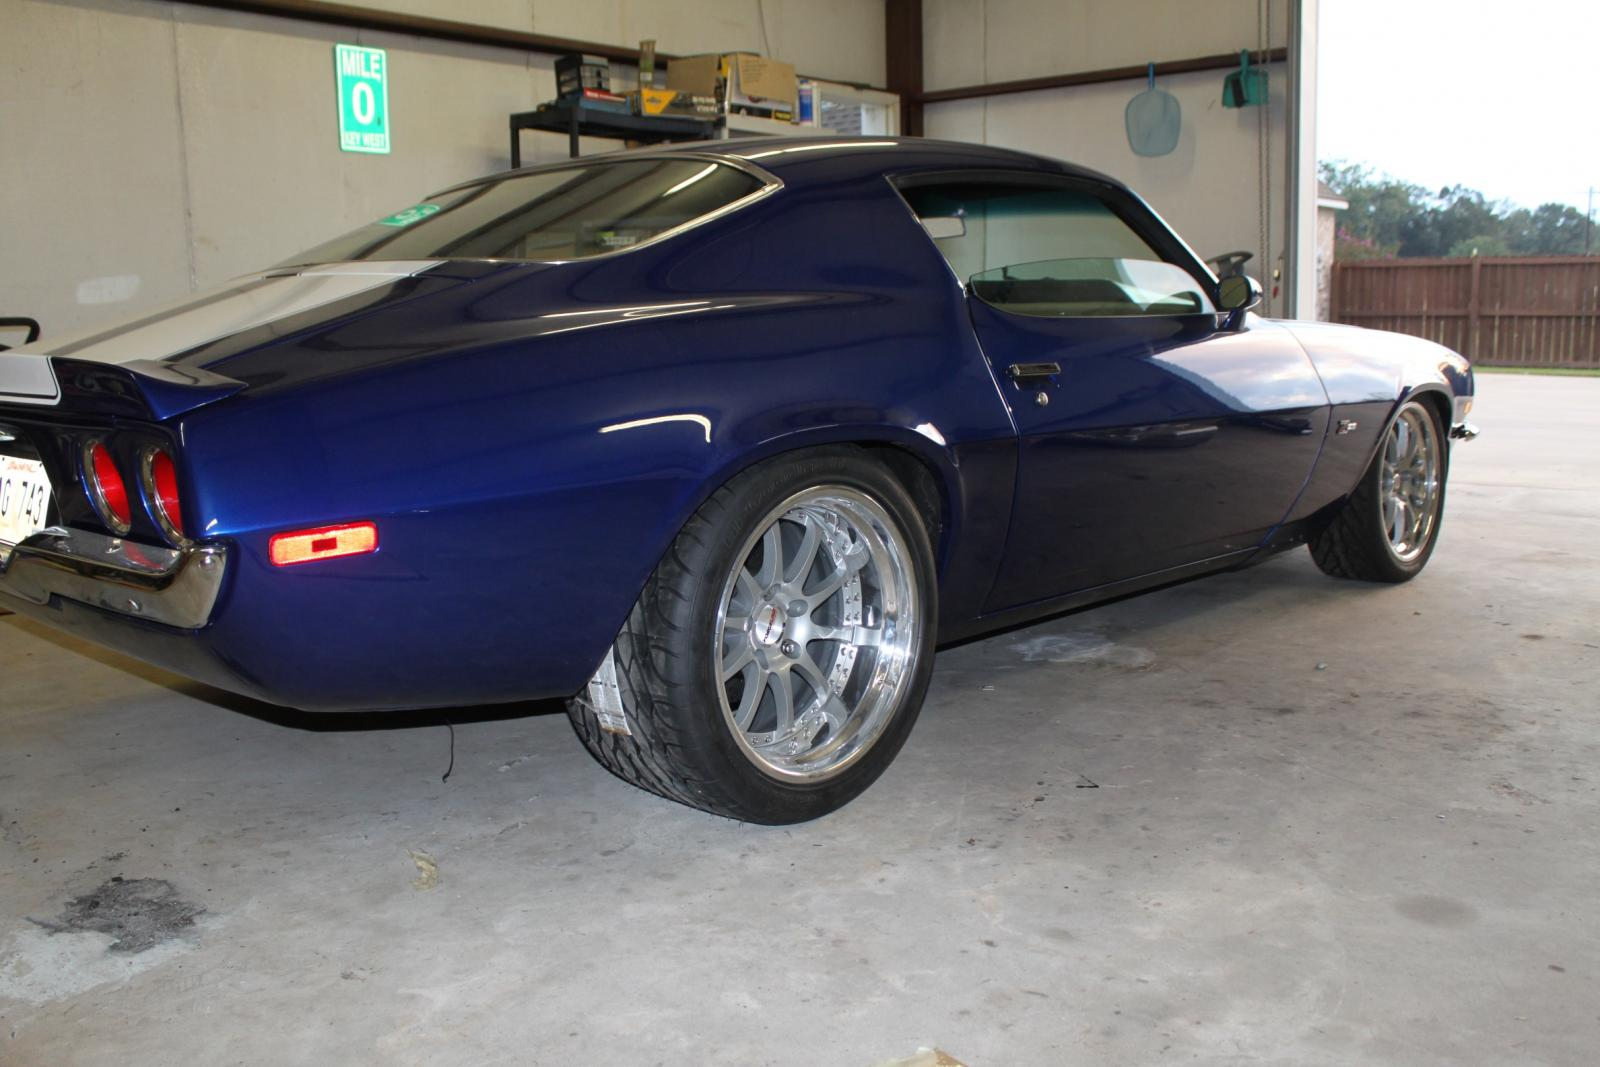 1971 Camaro Project Update Almost Done